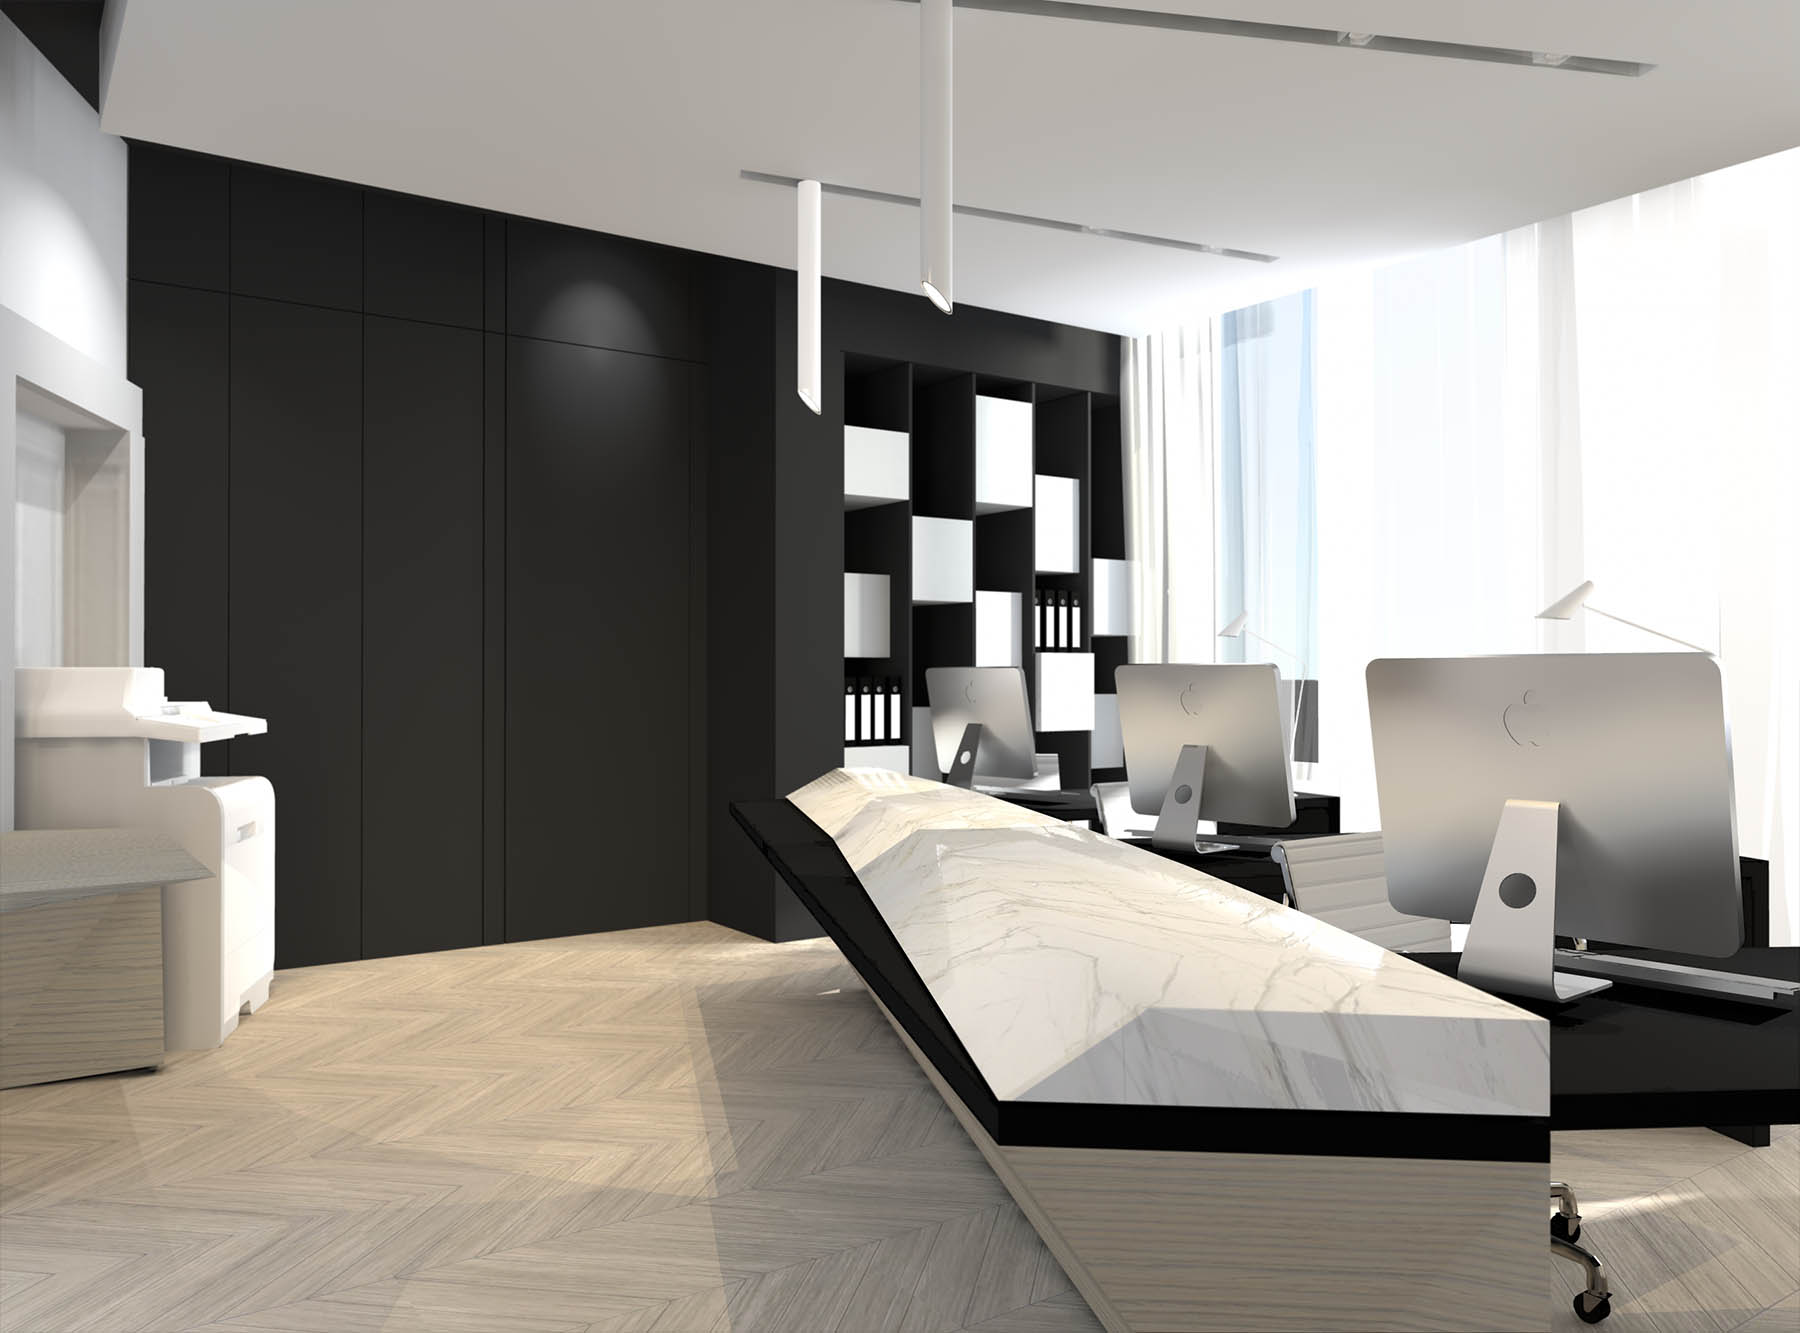 cabinet avocats geneve ch togu architecture. Black Bedroom Furniture Sets. Home Design Ideas